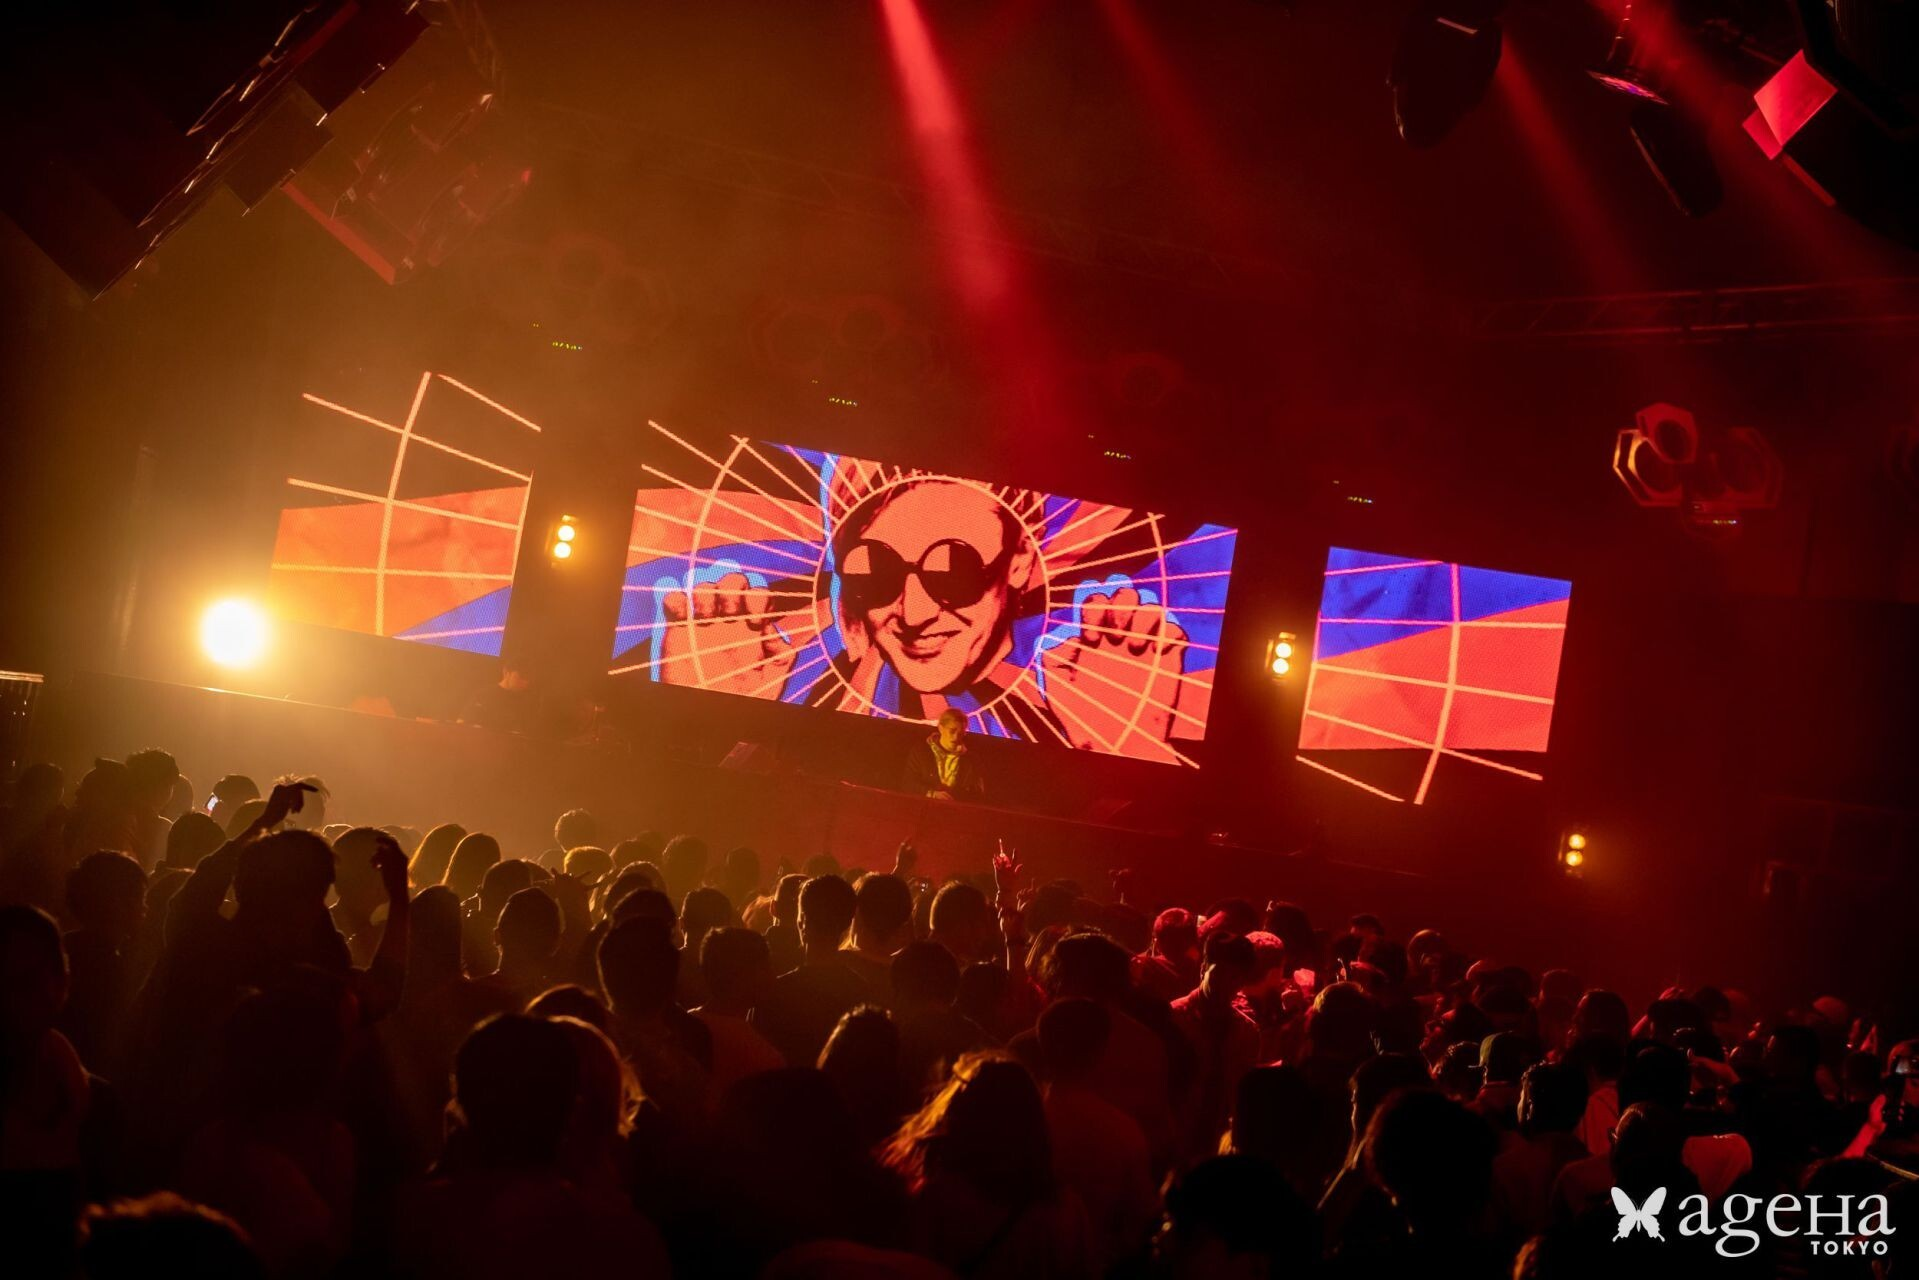 Iflyer Photos 3 99 Ageha Year End Party 2019 Road To Core Music Festival 2020 Supported By Days Ageha Tokyo 2019 12 14 Sat